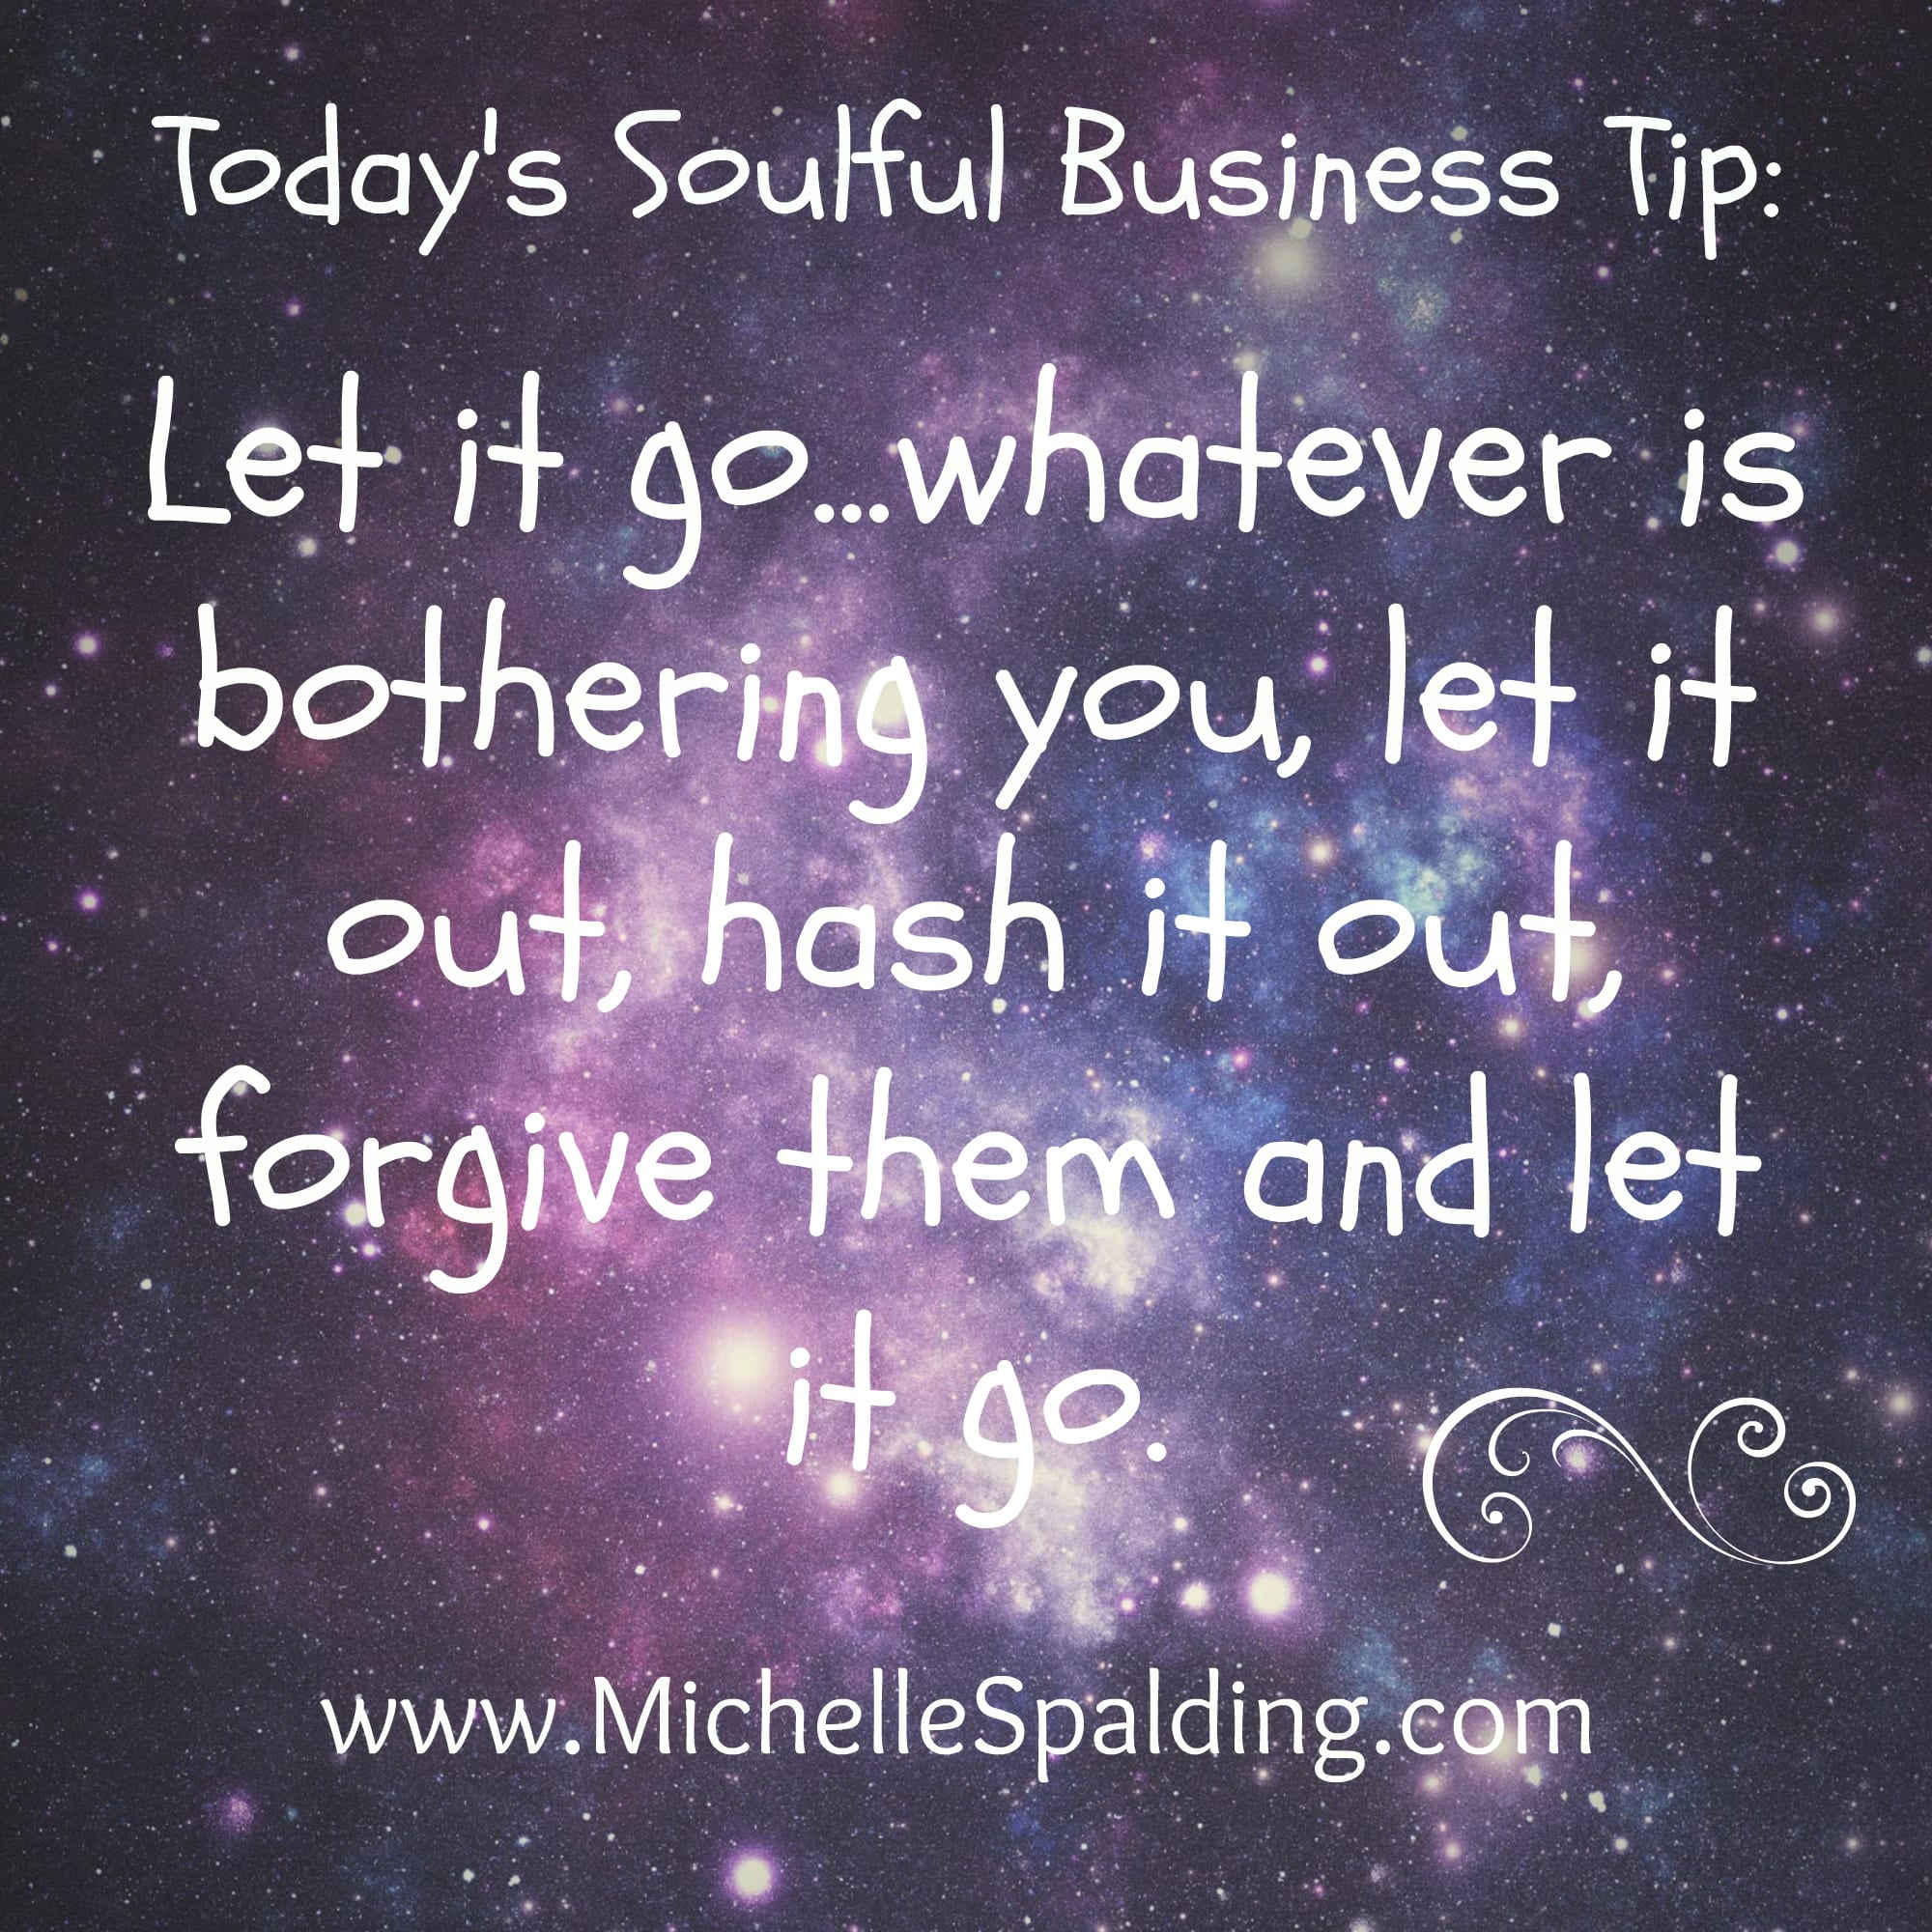 Let it go...whatever is bothering you, let it out, hash it out, forgive them and let it go